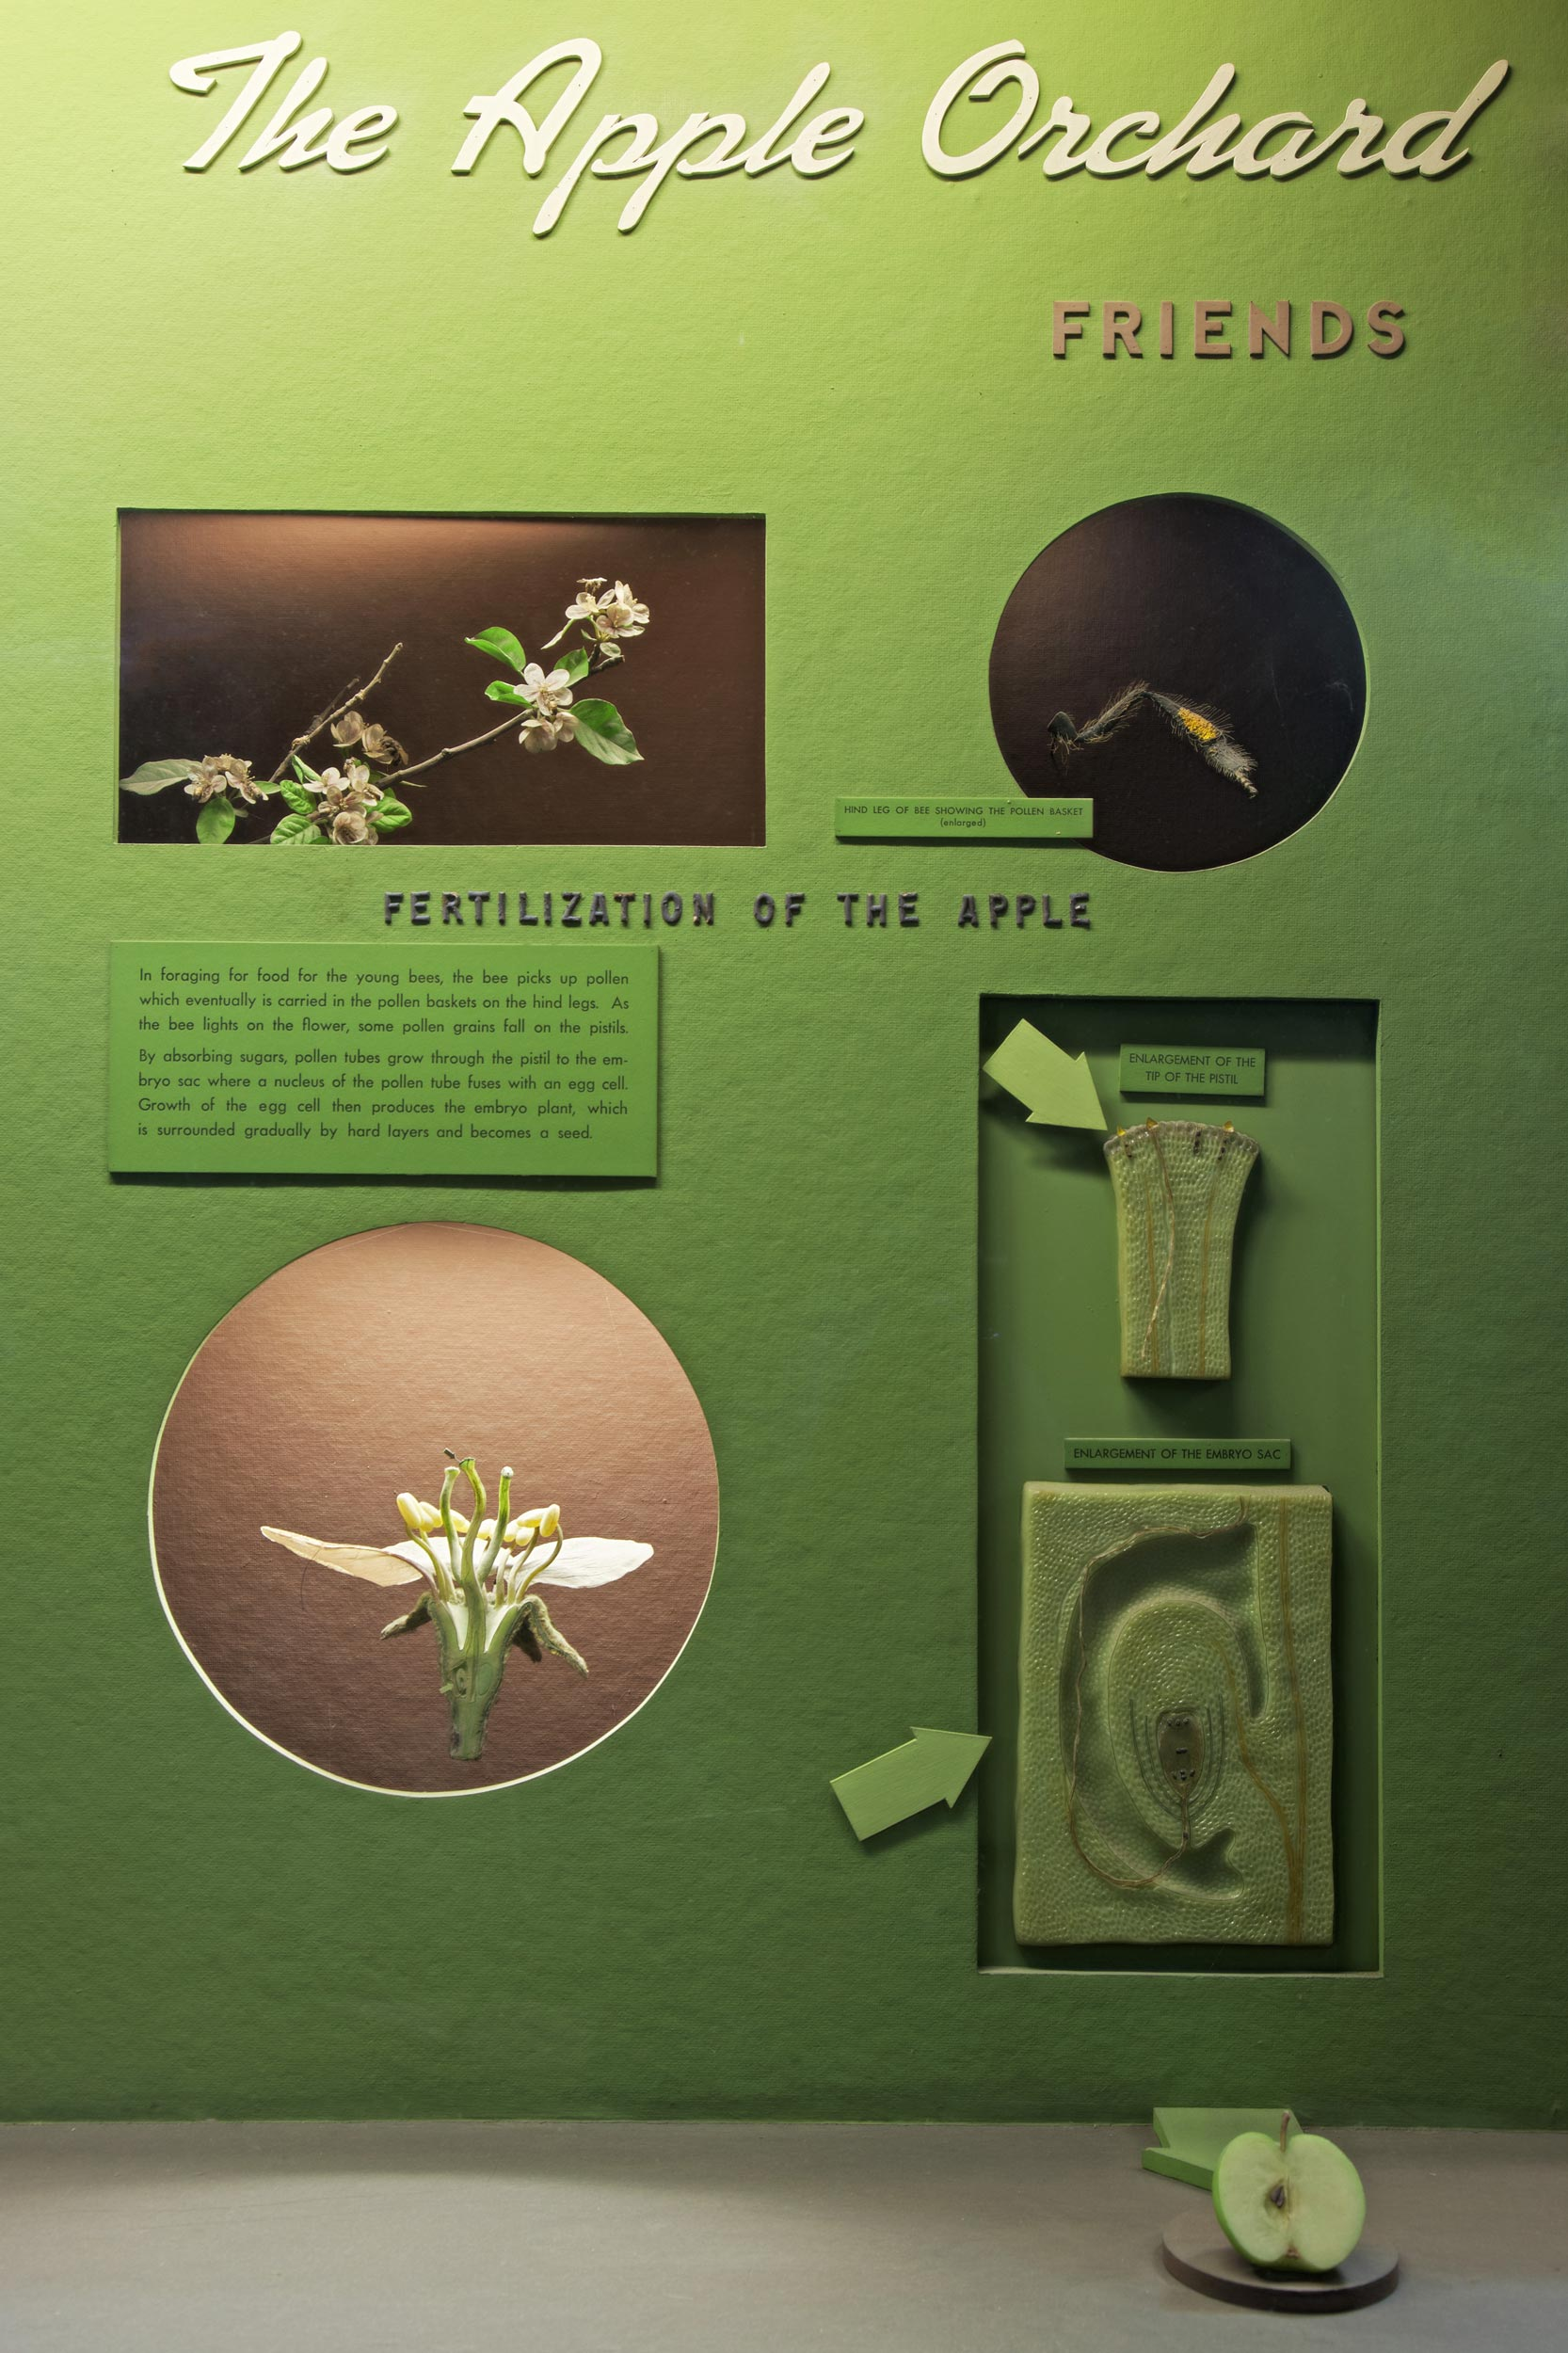 Museum case showing an array of models illustrating the fertilization of the apple